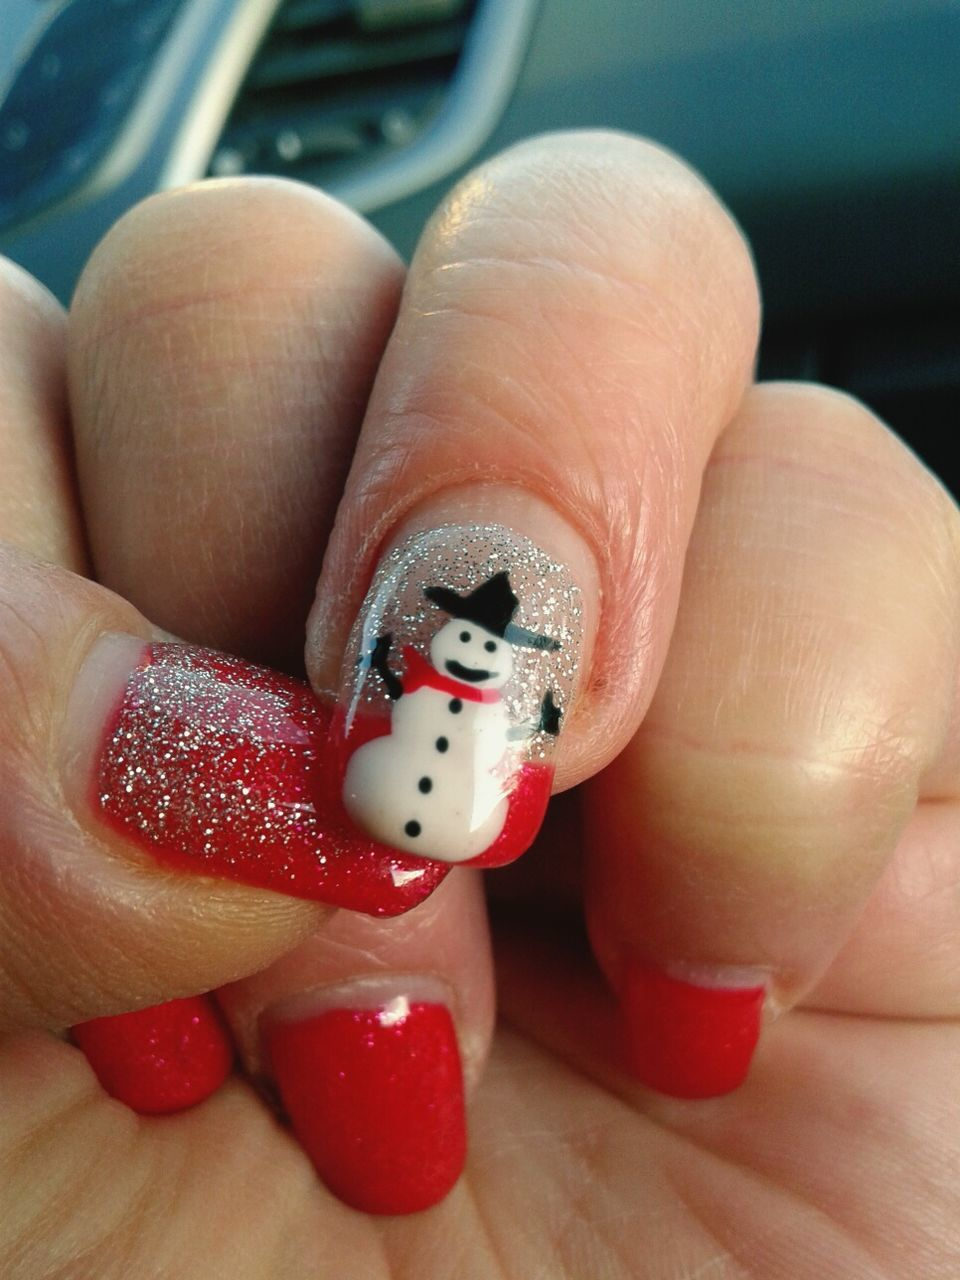 Cropped Hand Showing Snowman Nail Art